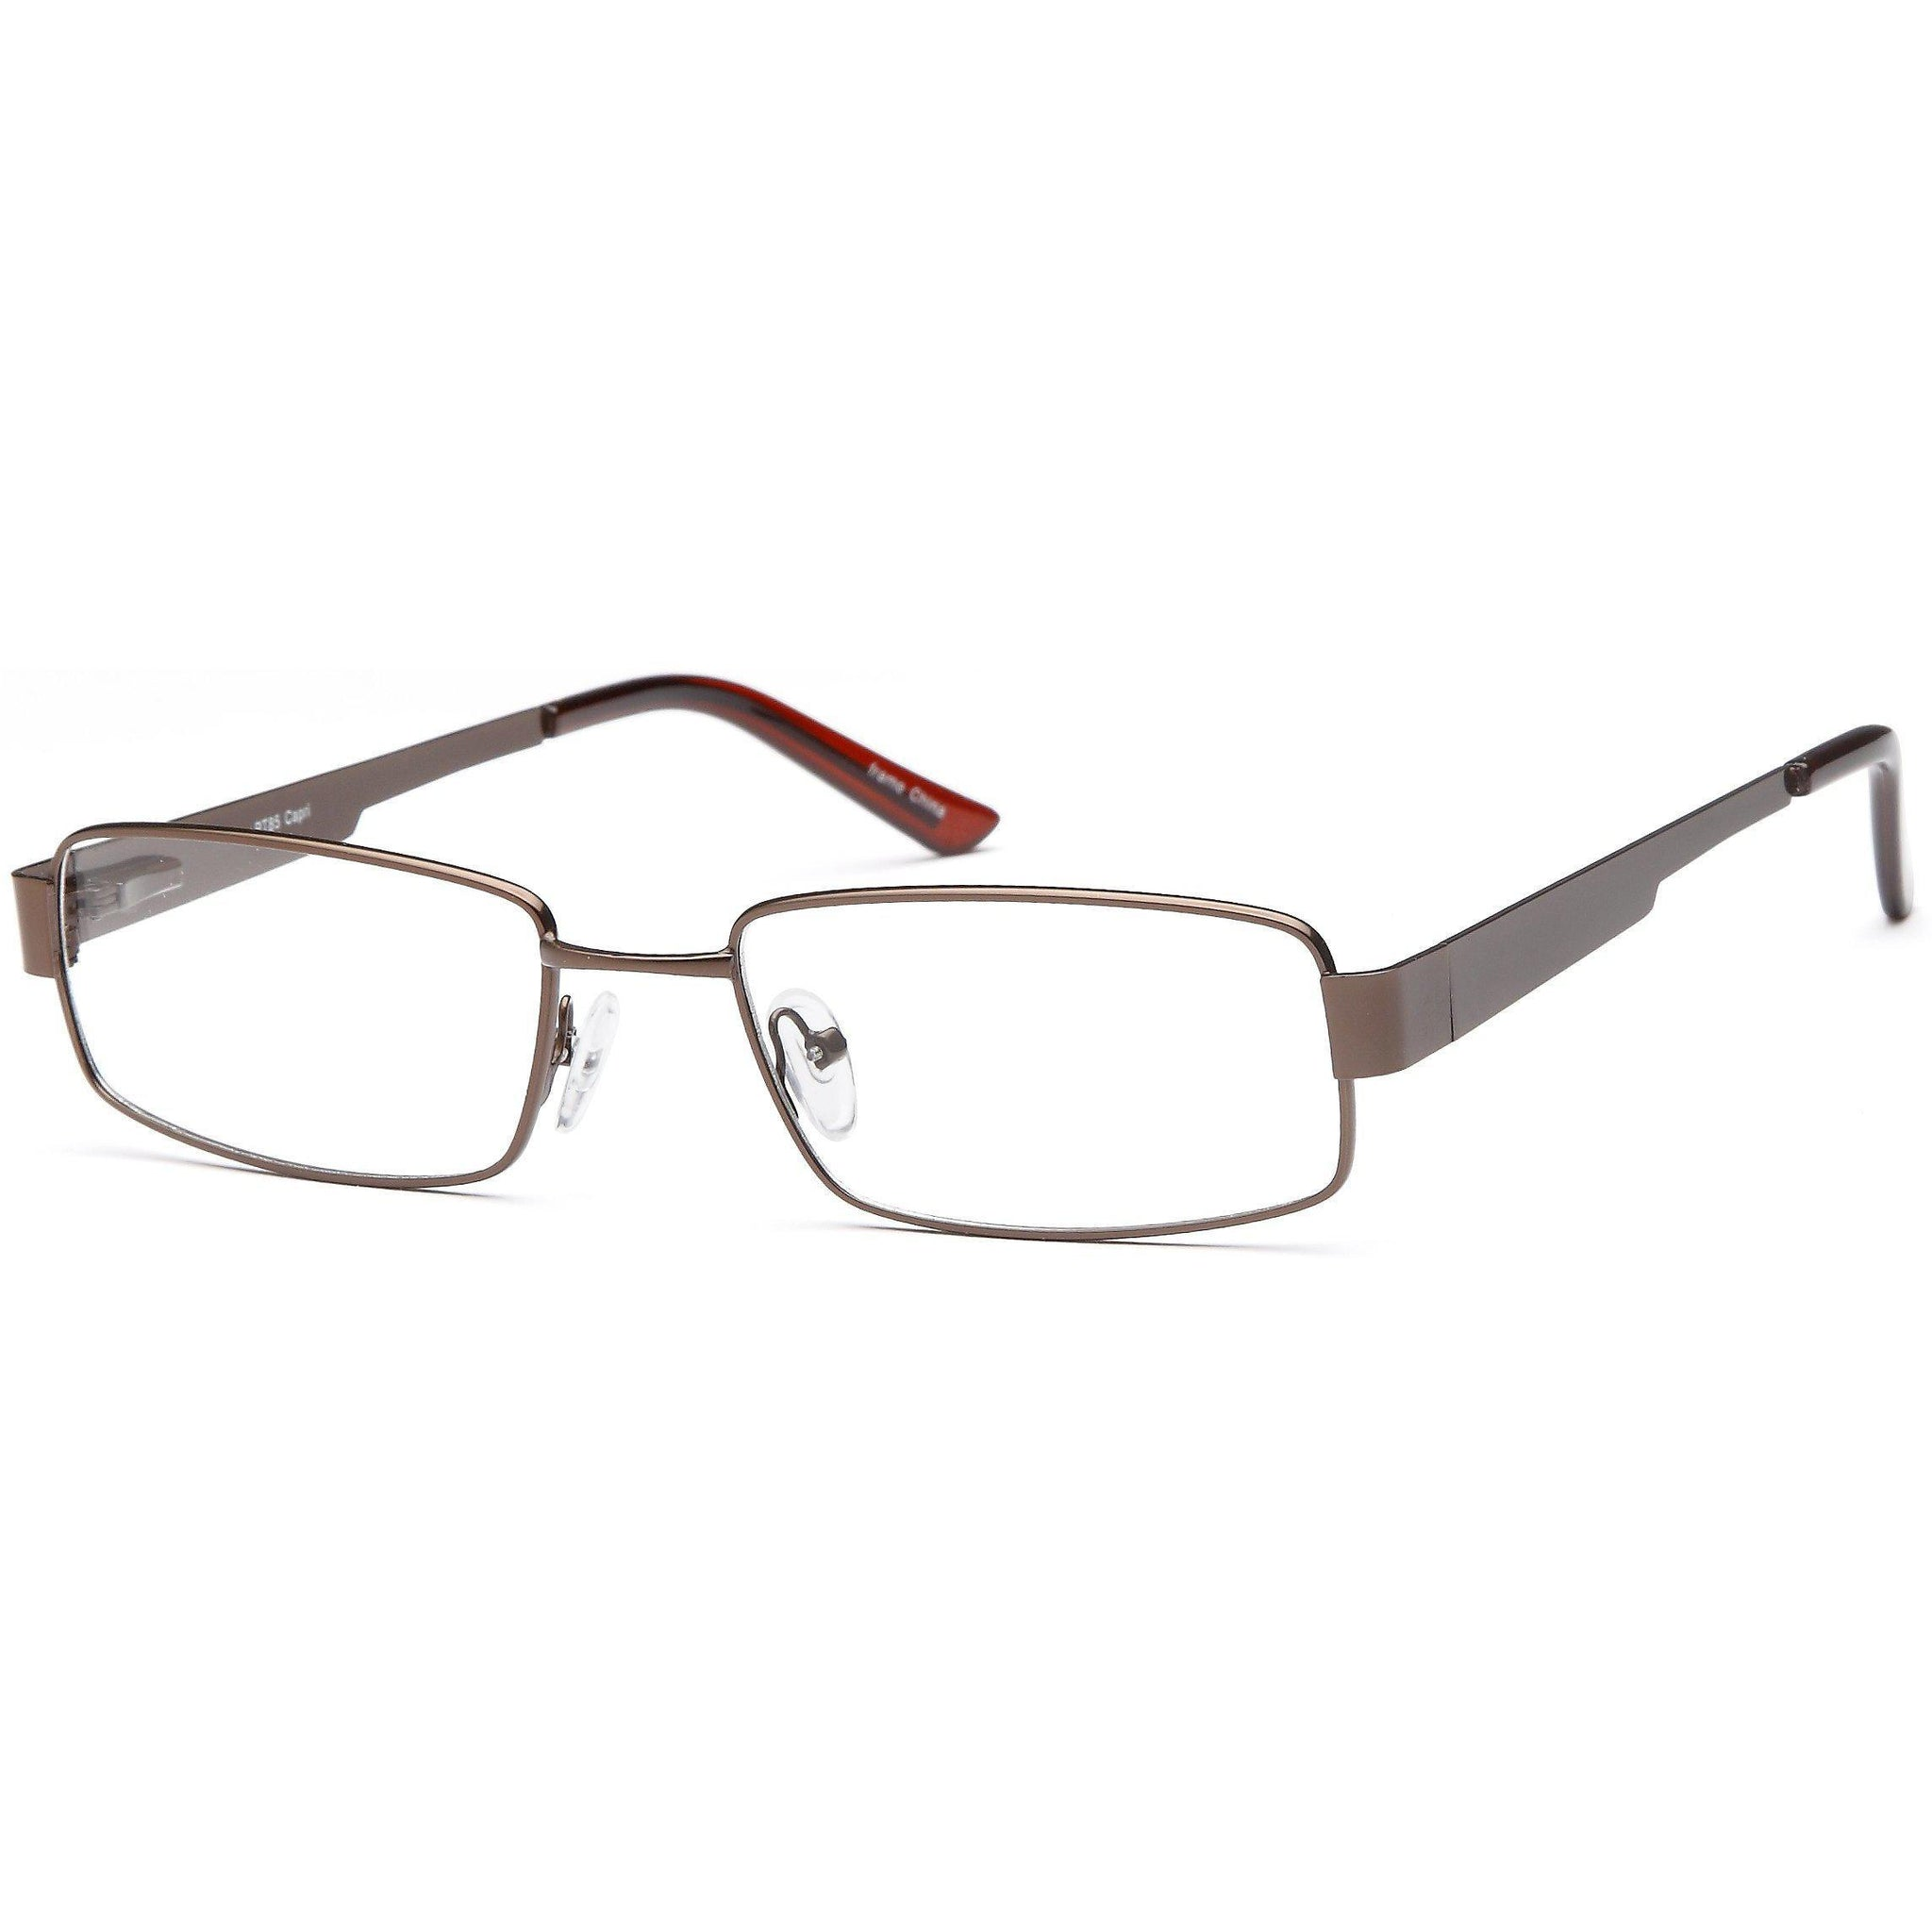 Appletree Prescription Glasses PT 85 Eyeglasses Frame